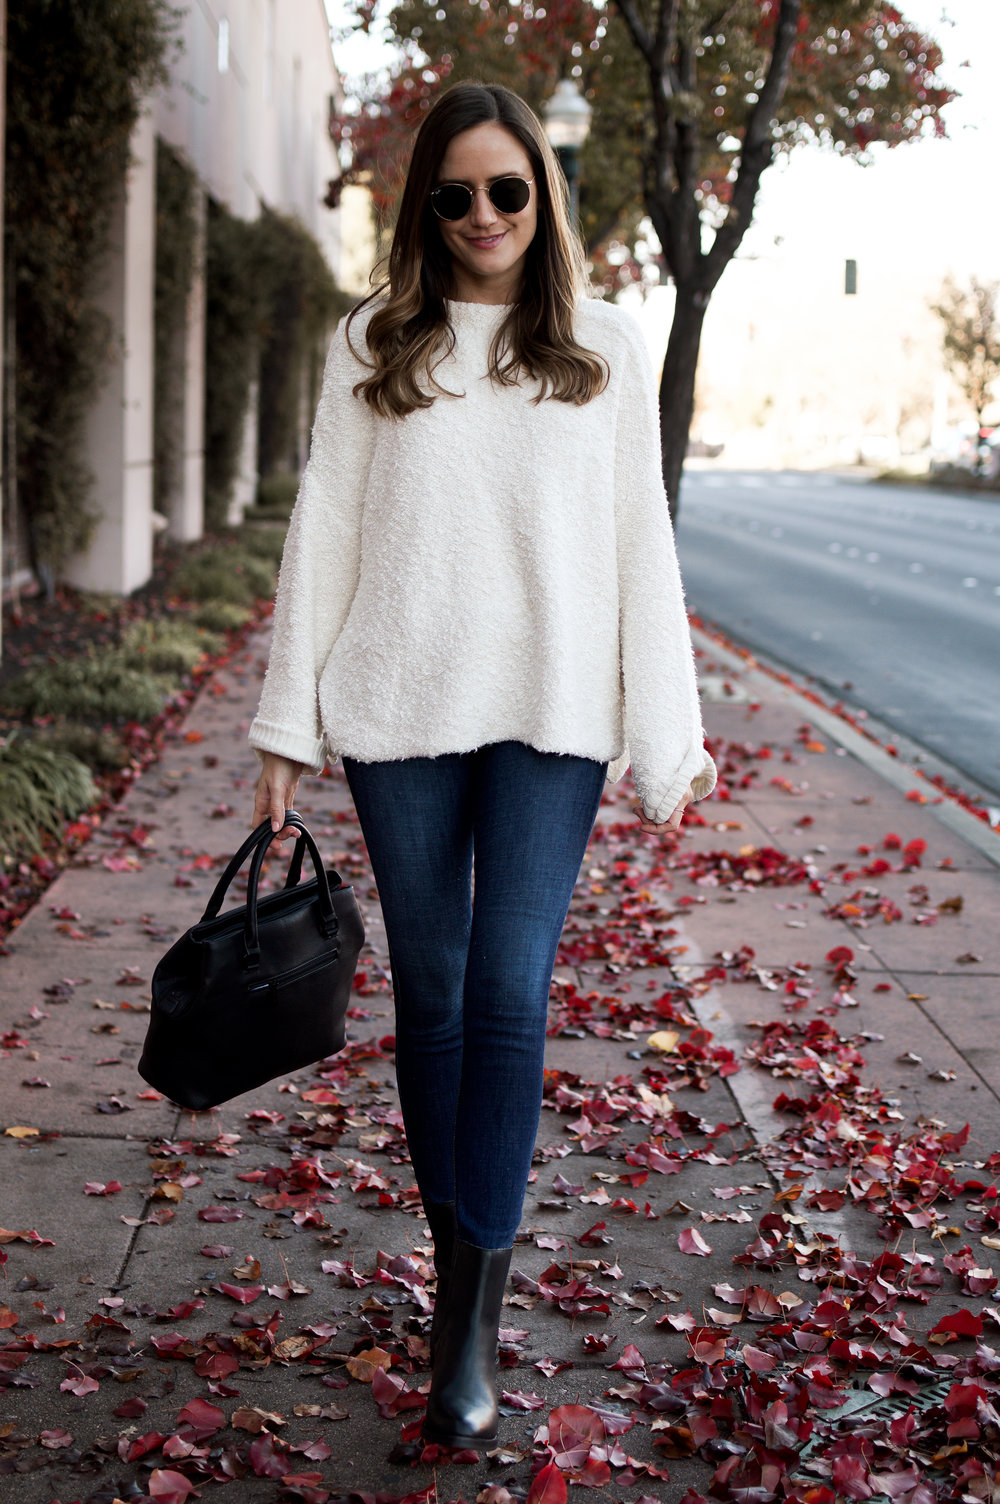 Shop the Look Below.  Free People Sweater  |  Joe's Jeans  |  UGG Boots  |  Ray-Ban Sunglasses